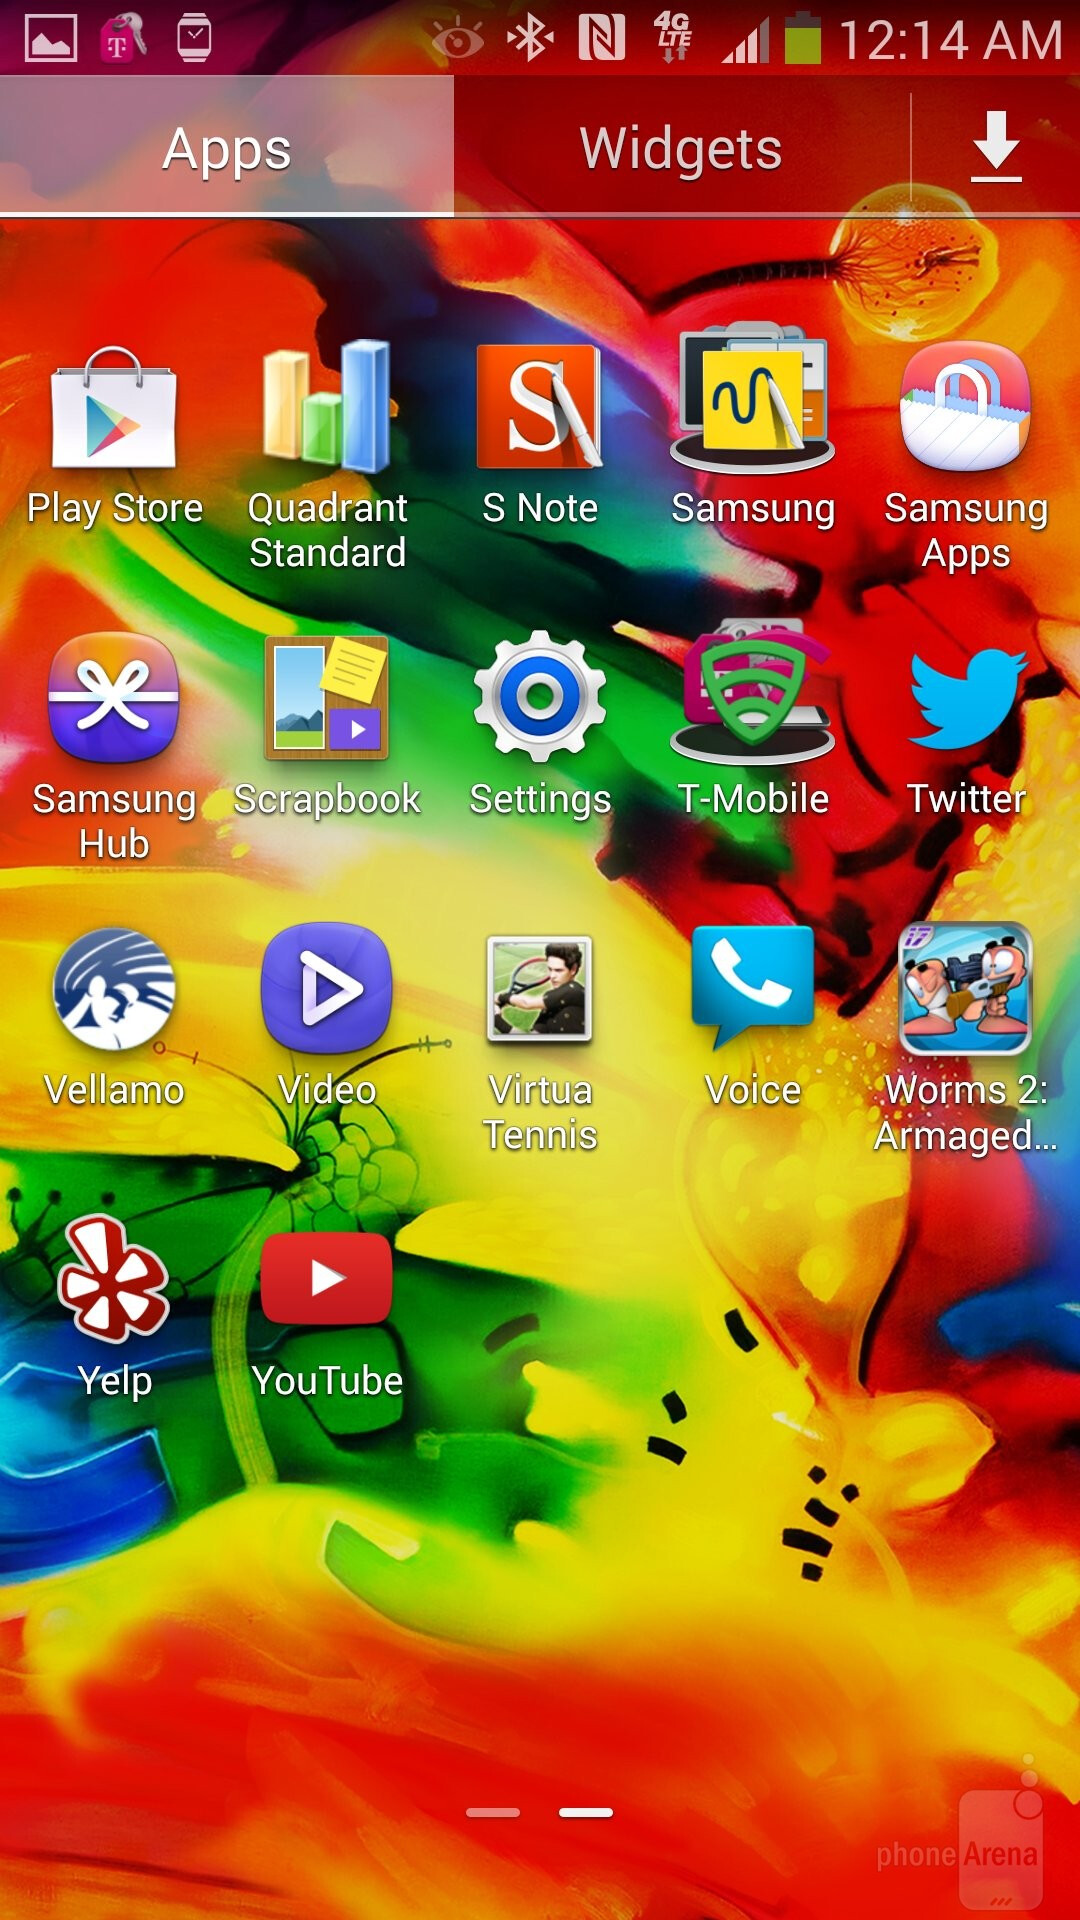 How to use scrapbook on note 3 - How To Use Scrapbook On Note 3 53